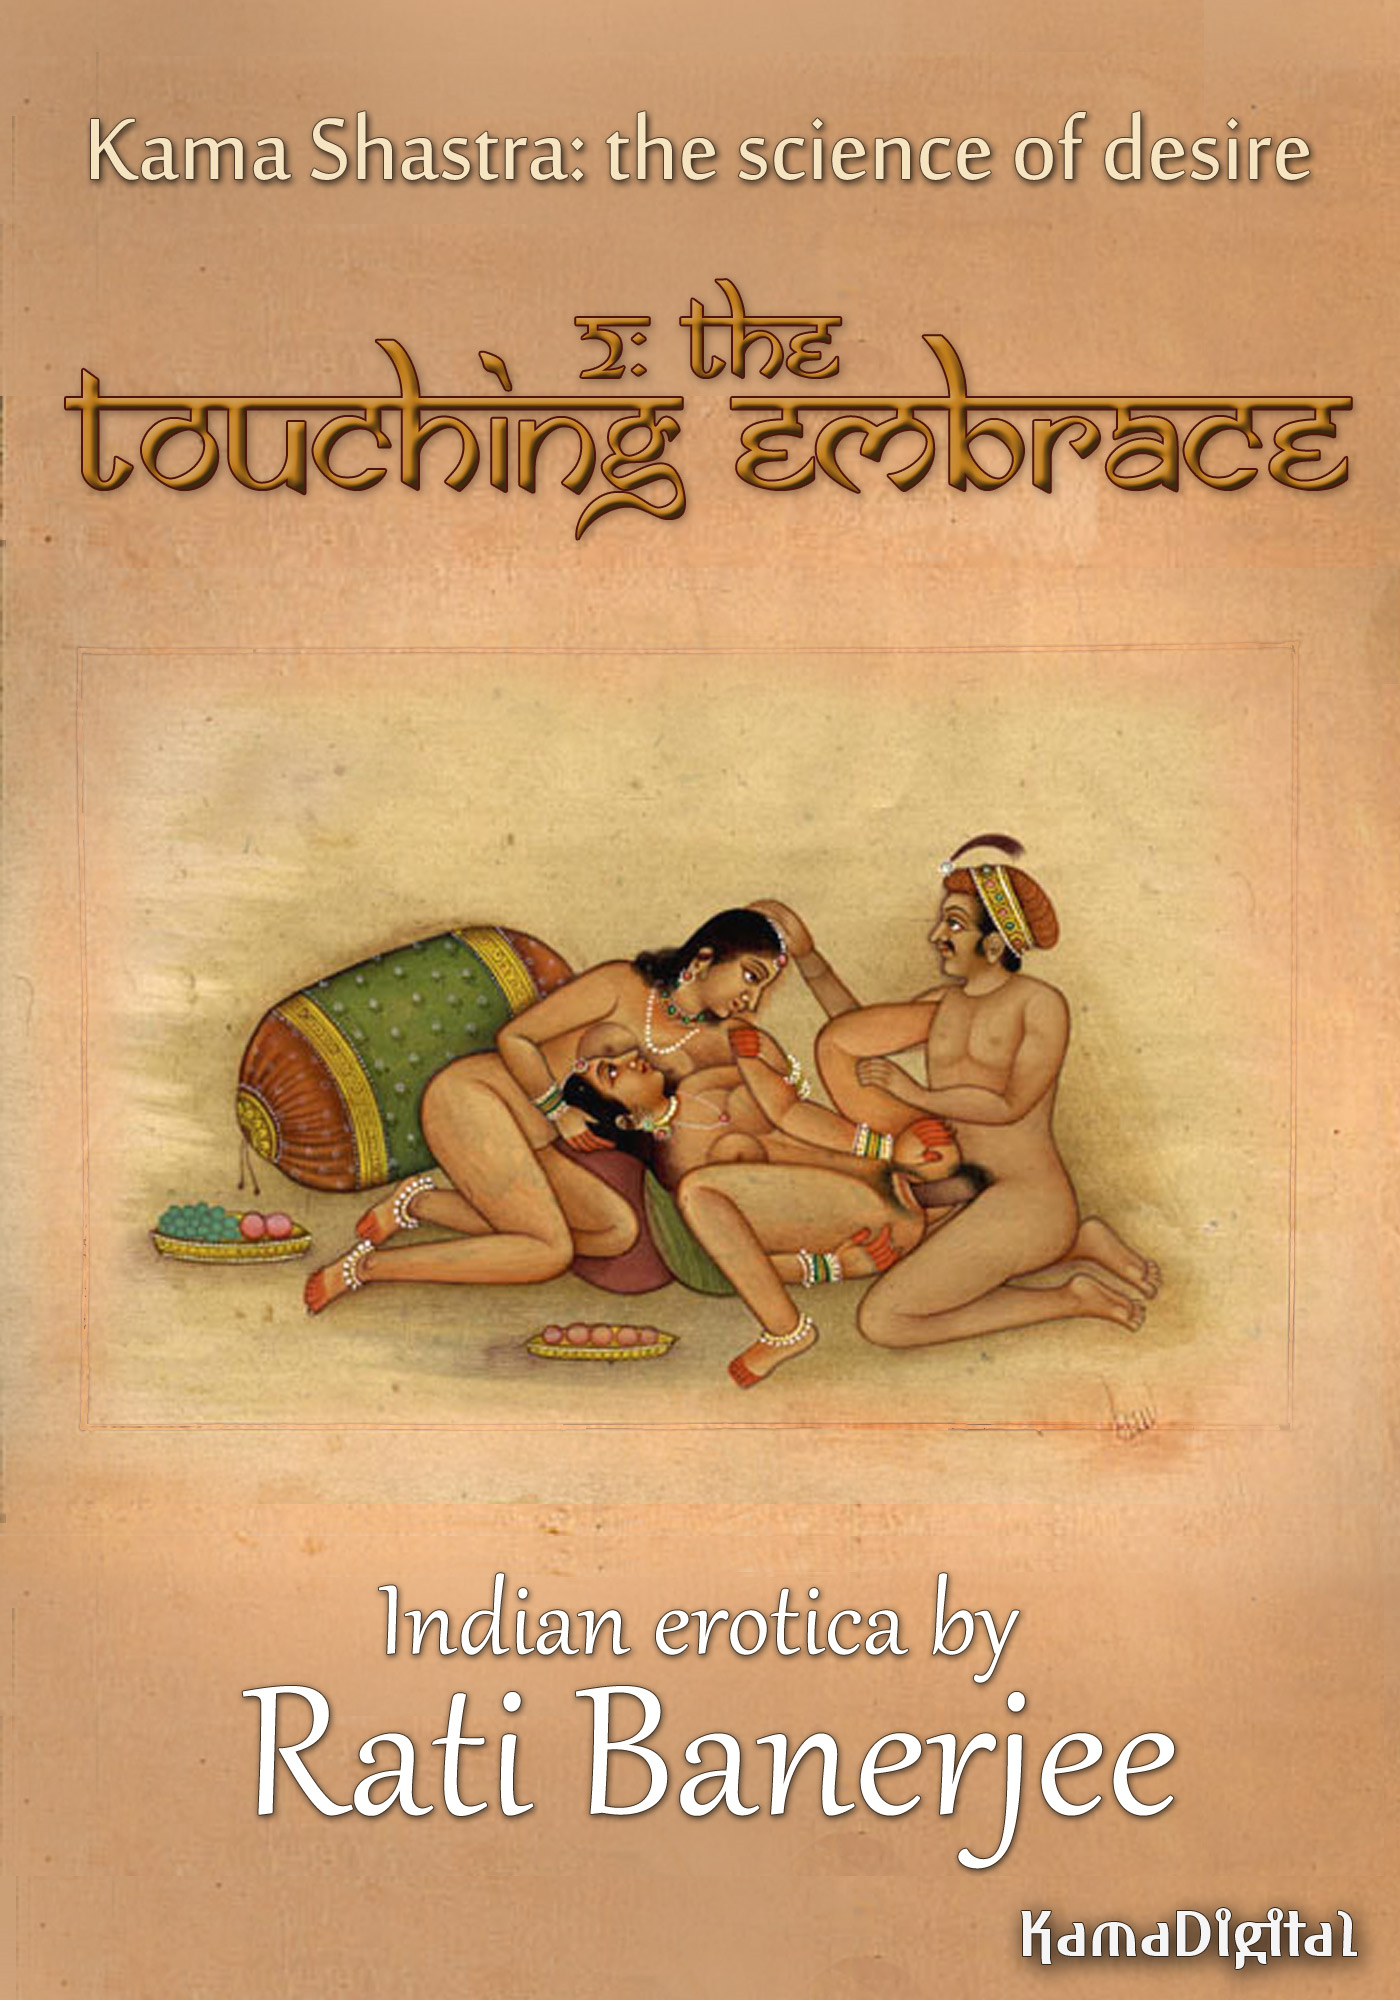 Kama Shastra 2: The Touching Embrace (Indian erotic romance, including wealthy alpha males, and explicit scenes of threesomes, group sex and public sex)